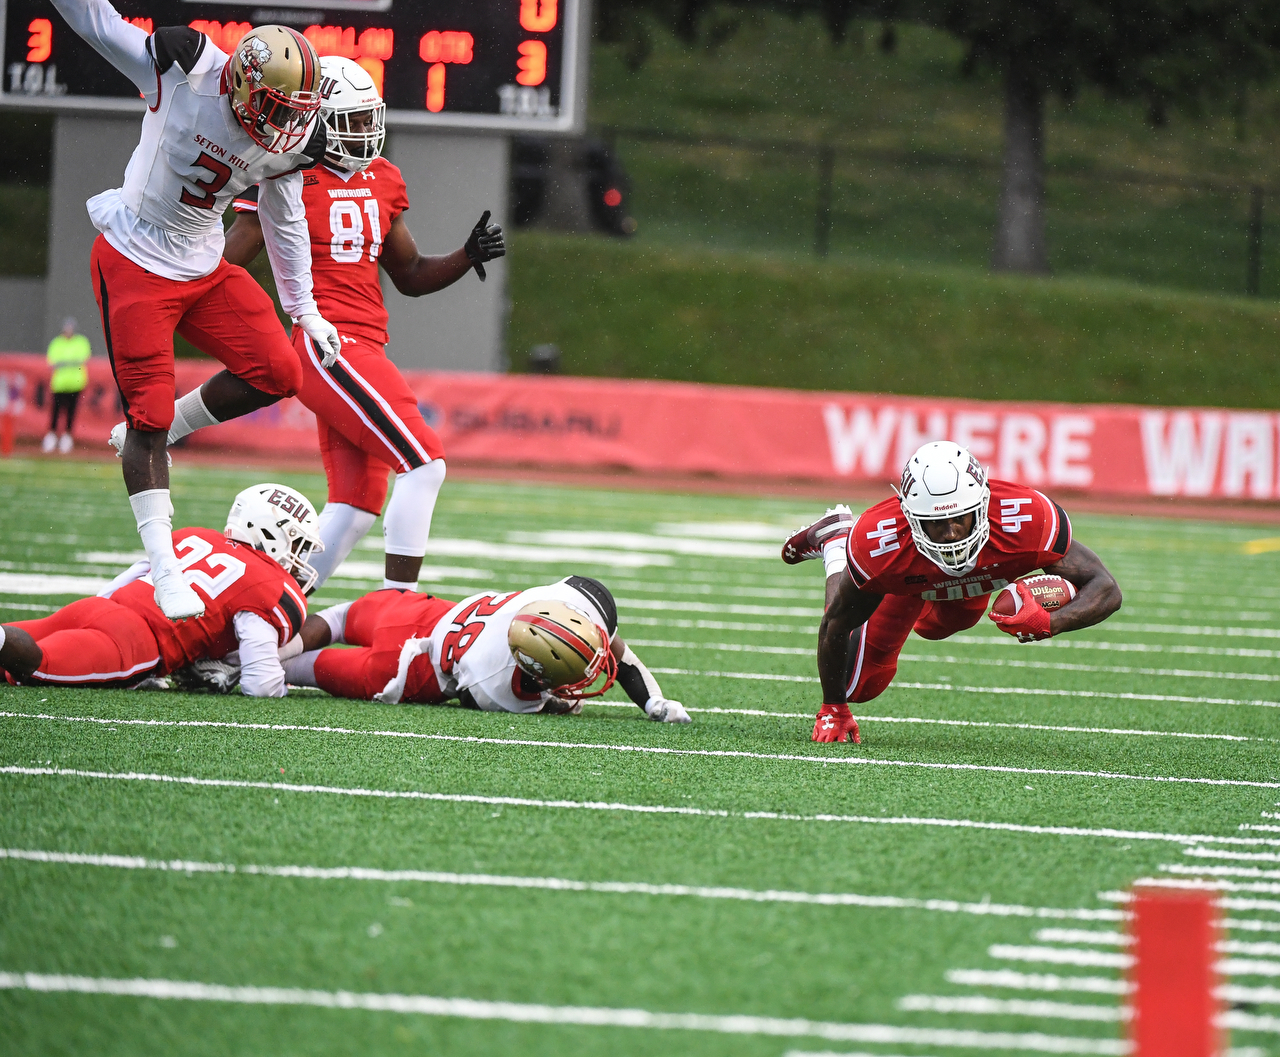 Jaymar Anderson dives for more yards against Seton Hill on Saturday night.